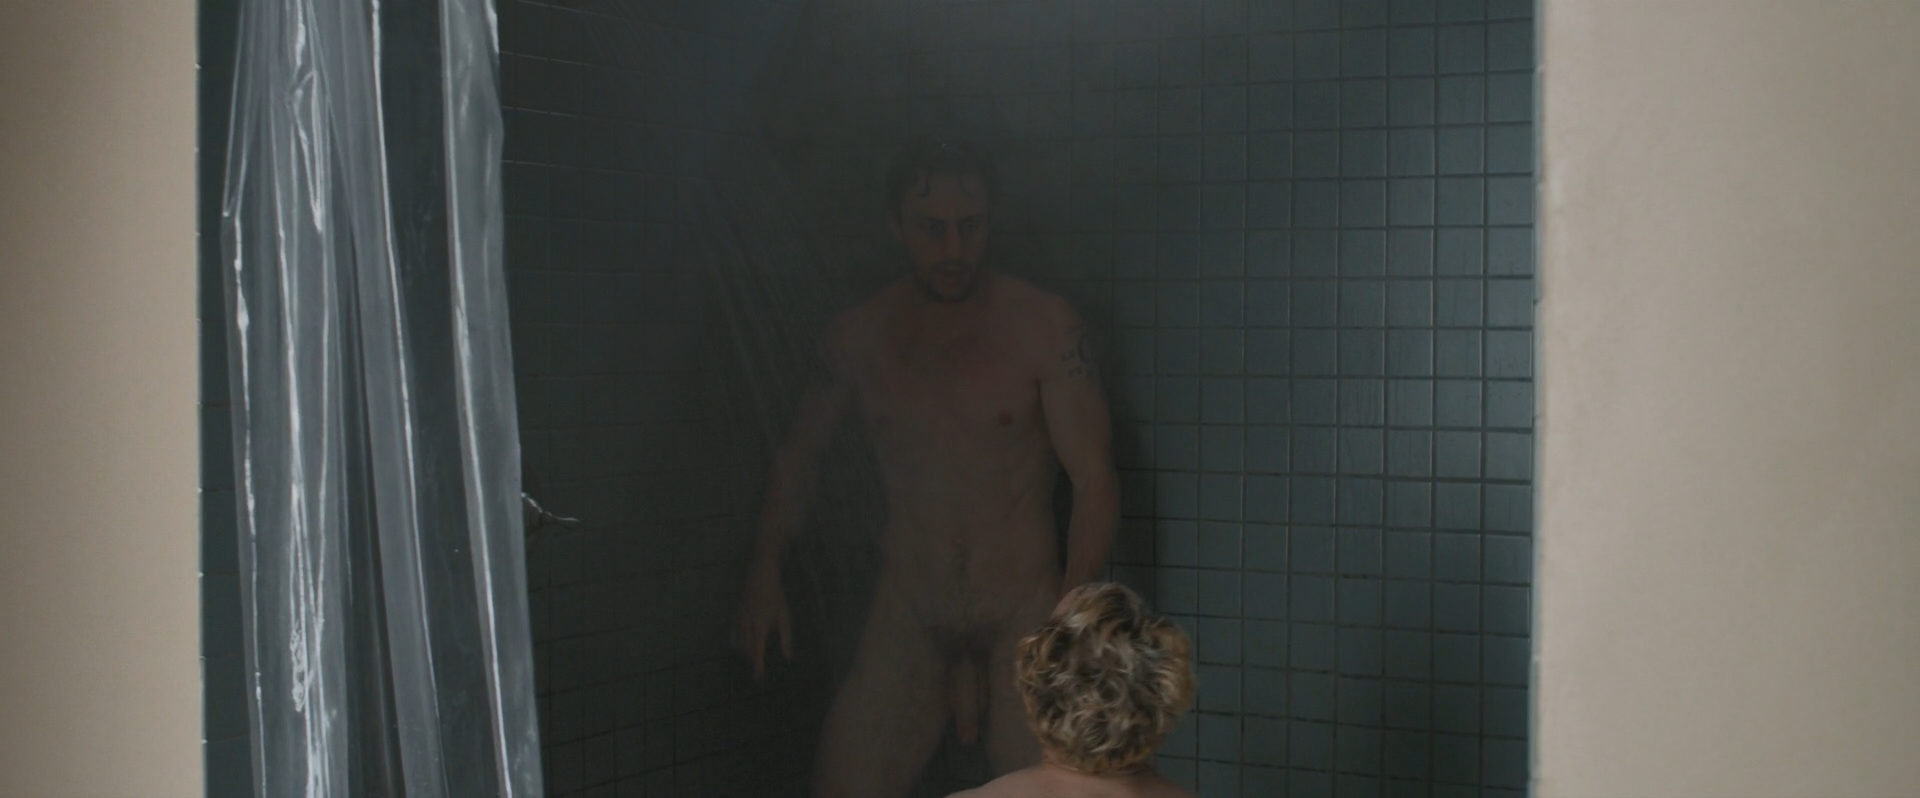 aaron taylor johnson naked